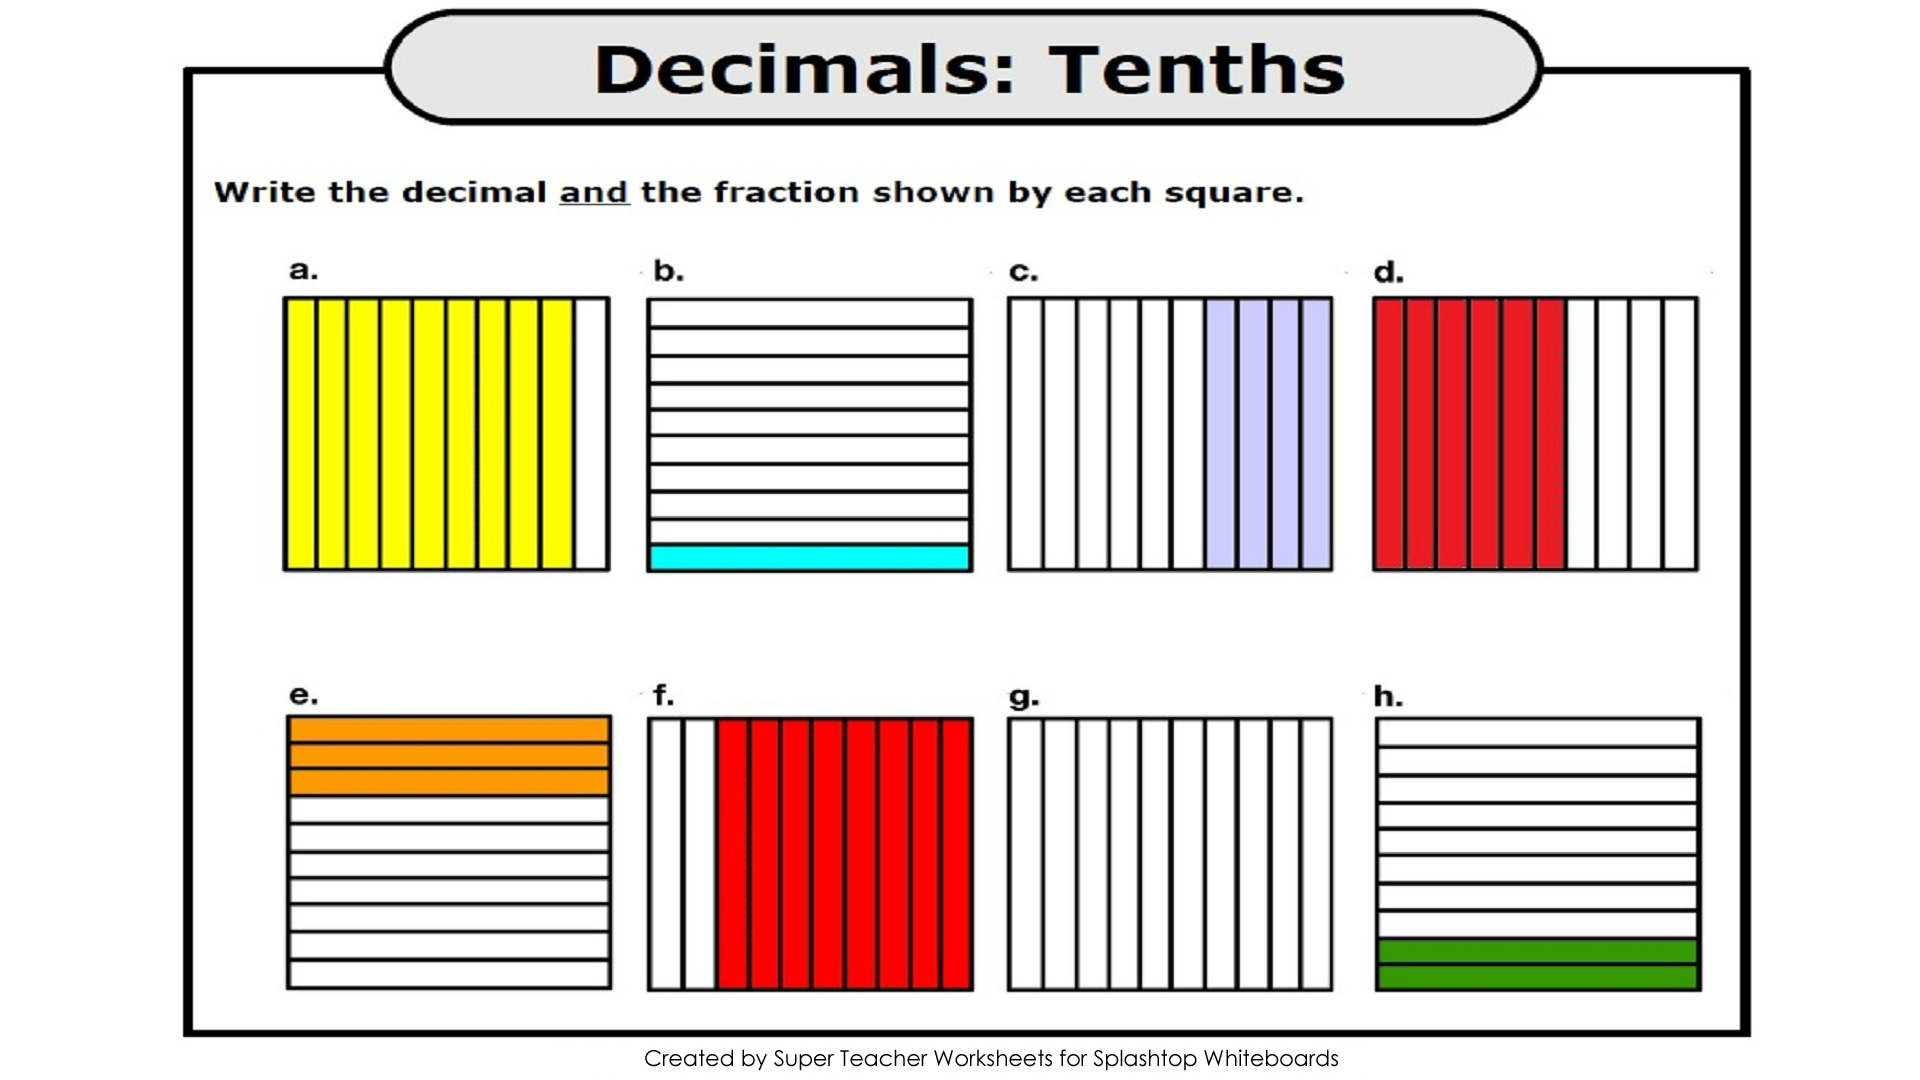 Splashtop Whiteboard Background Graphics – Decimal Tenths Worksheet